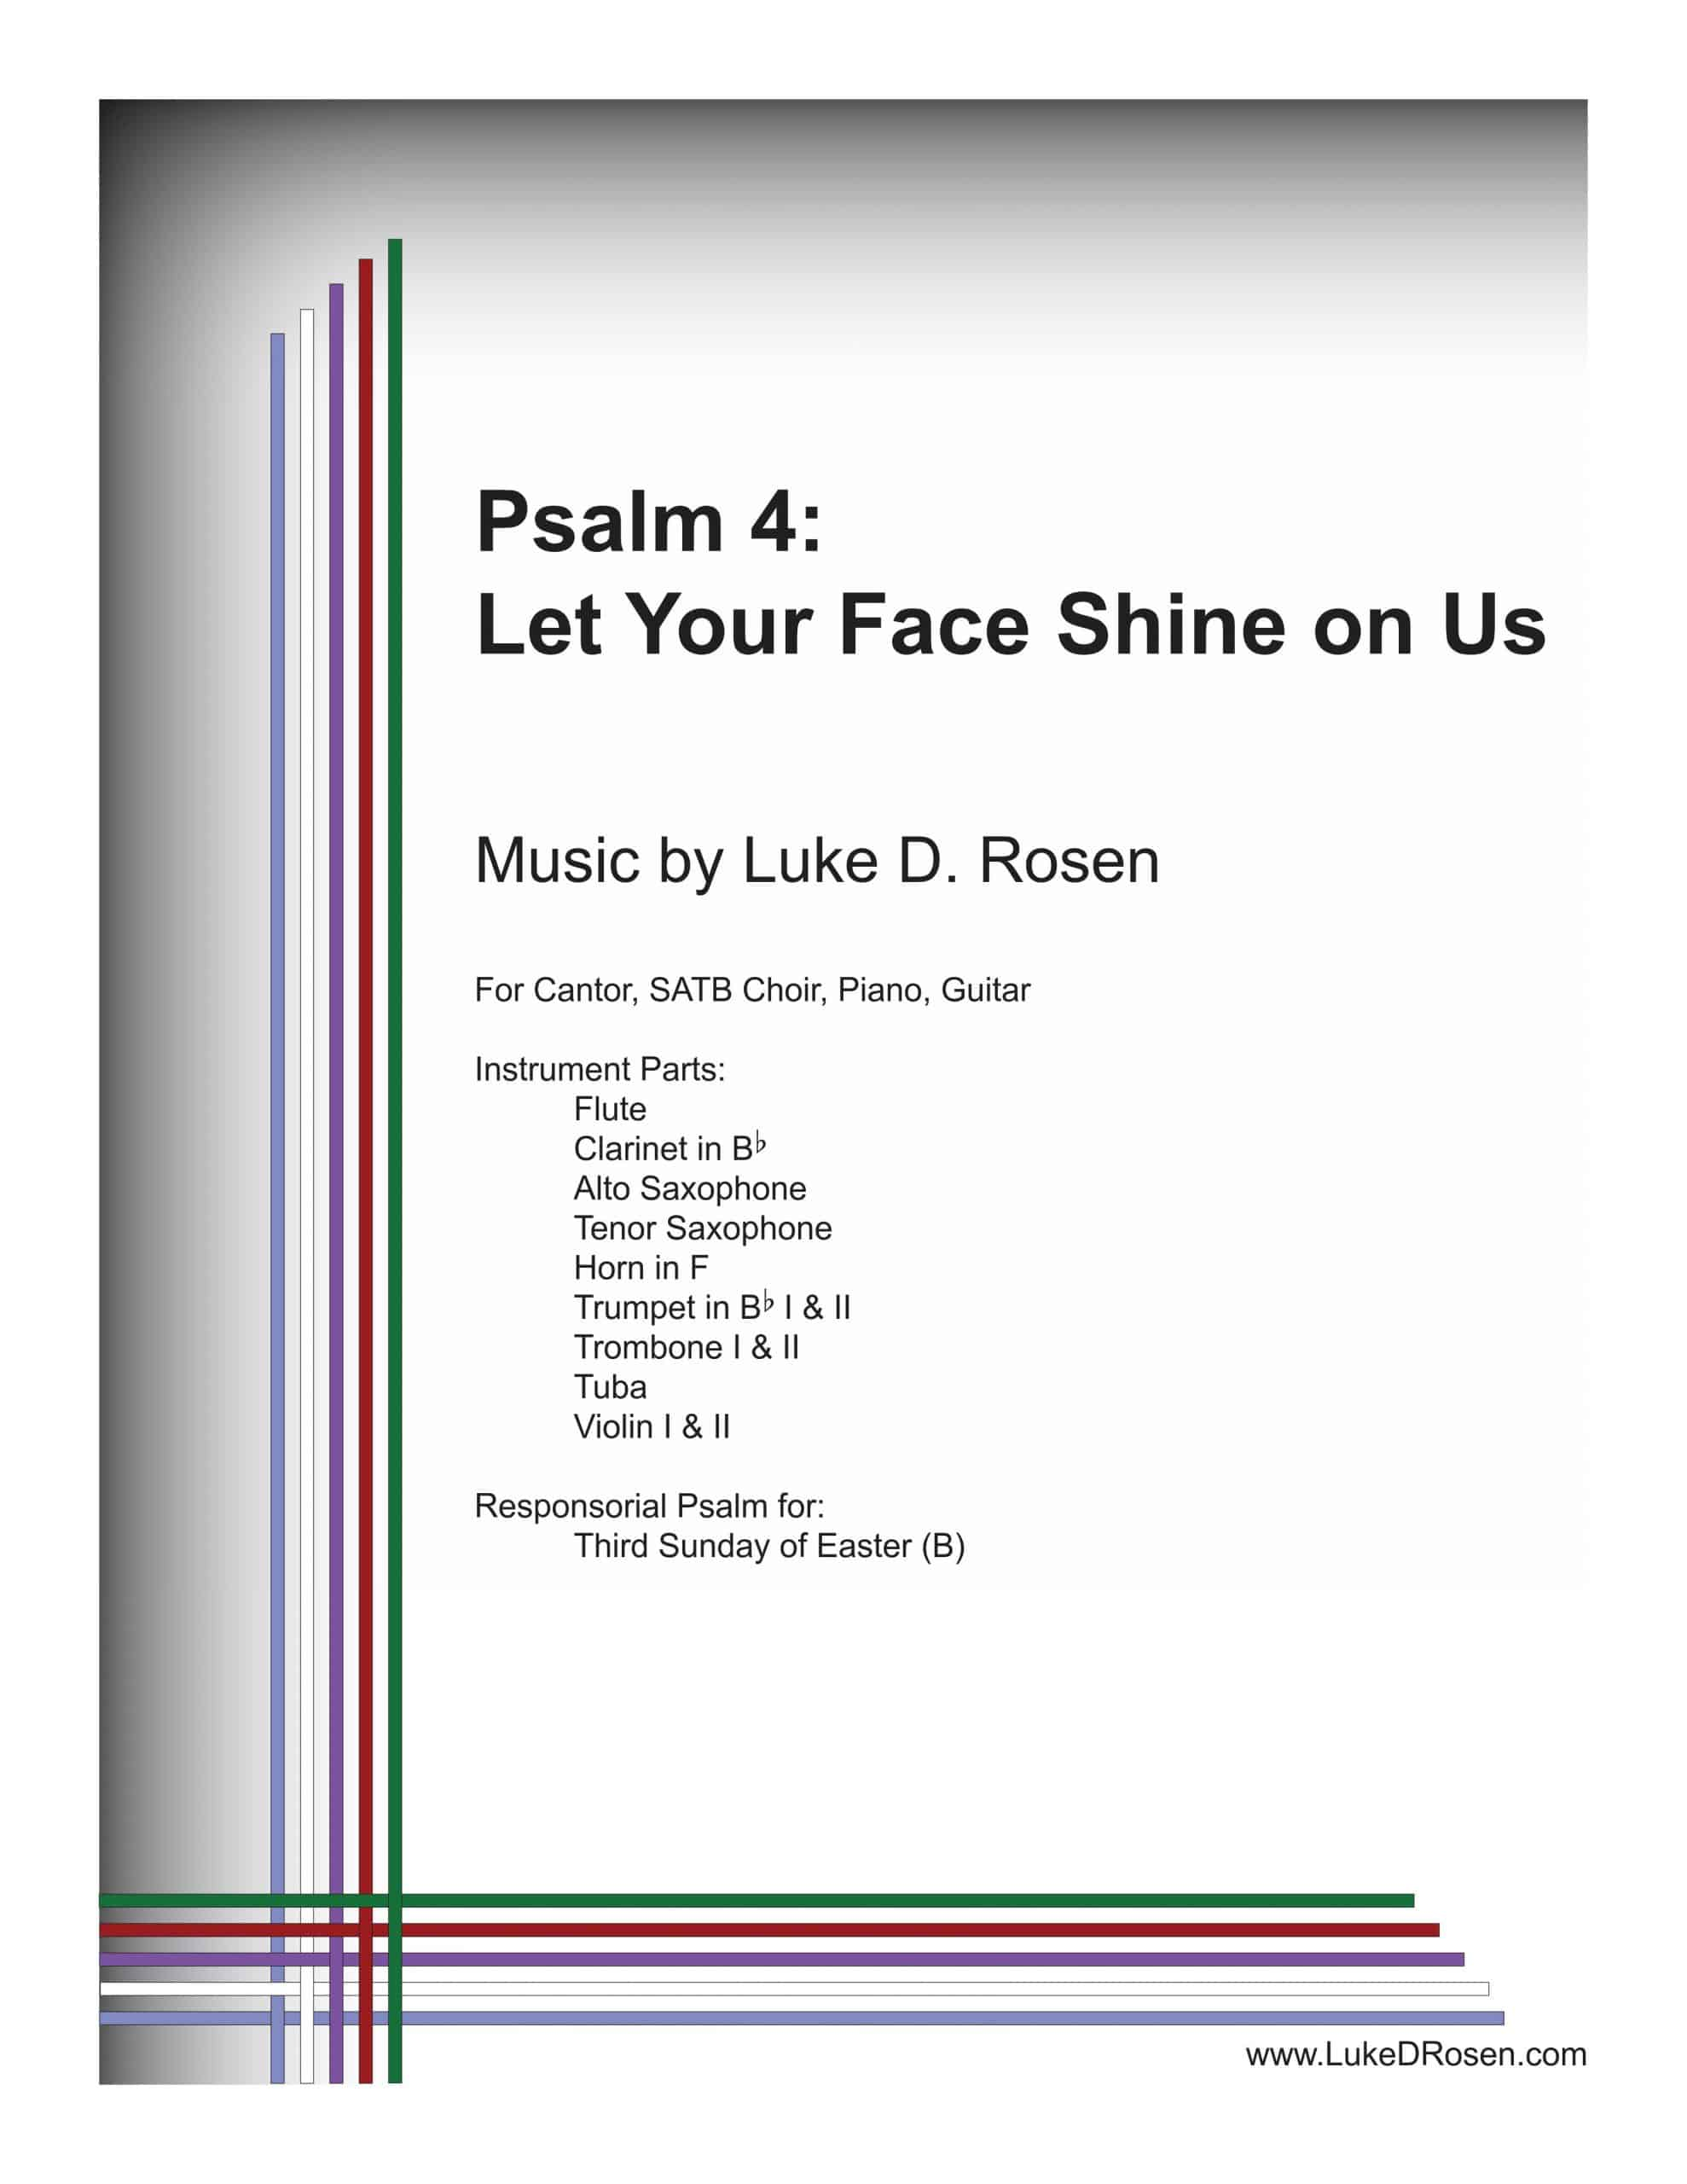 Psalm 4 Let Your Face Shine on Us ROSEN scaled